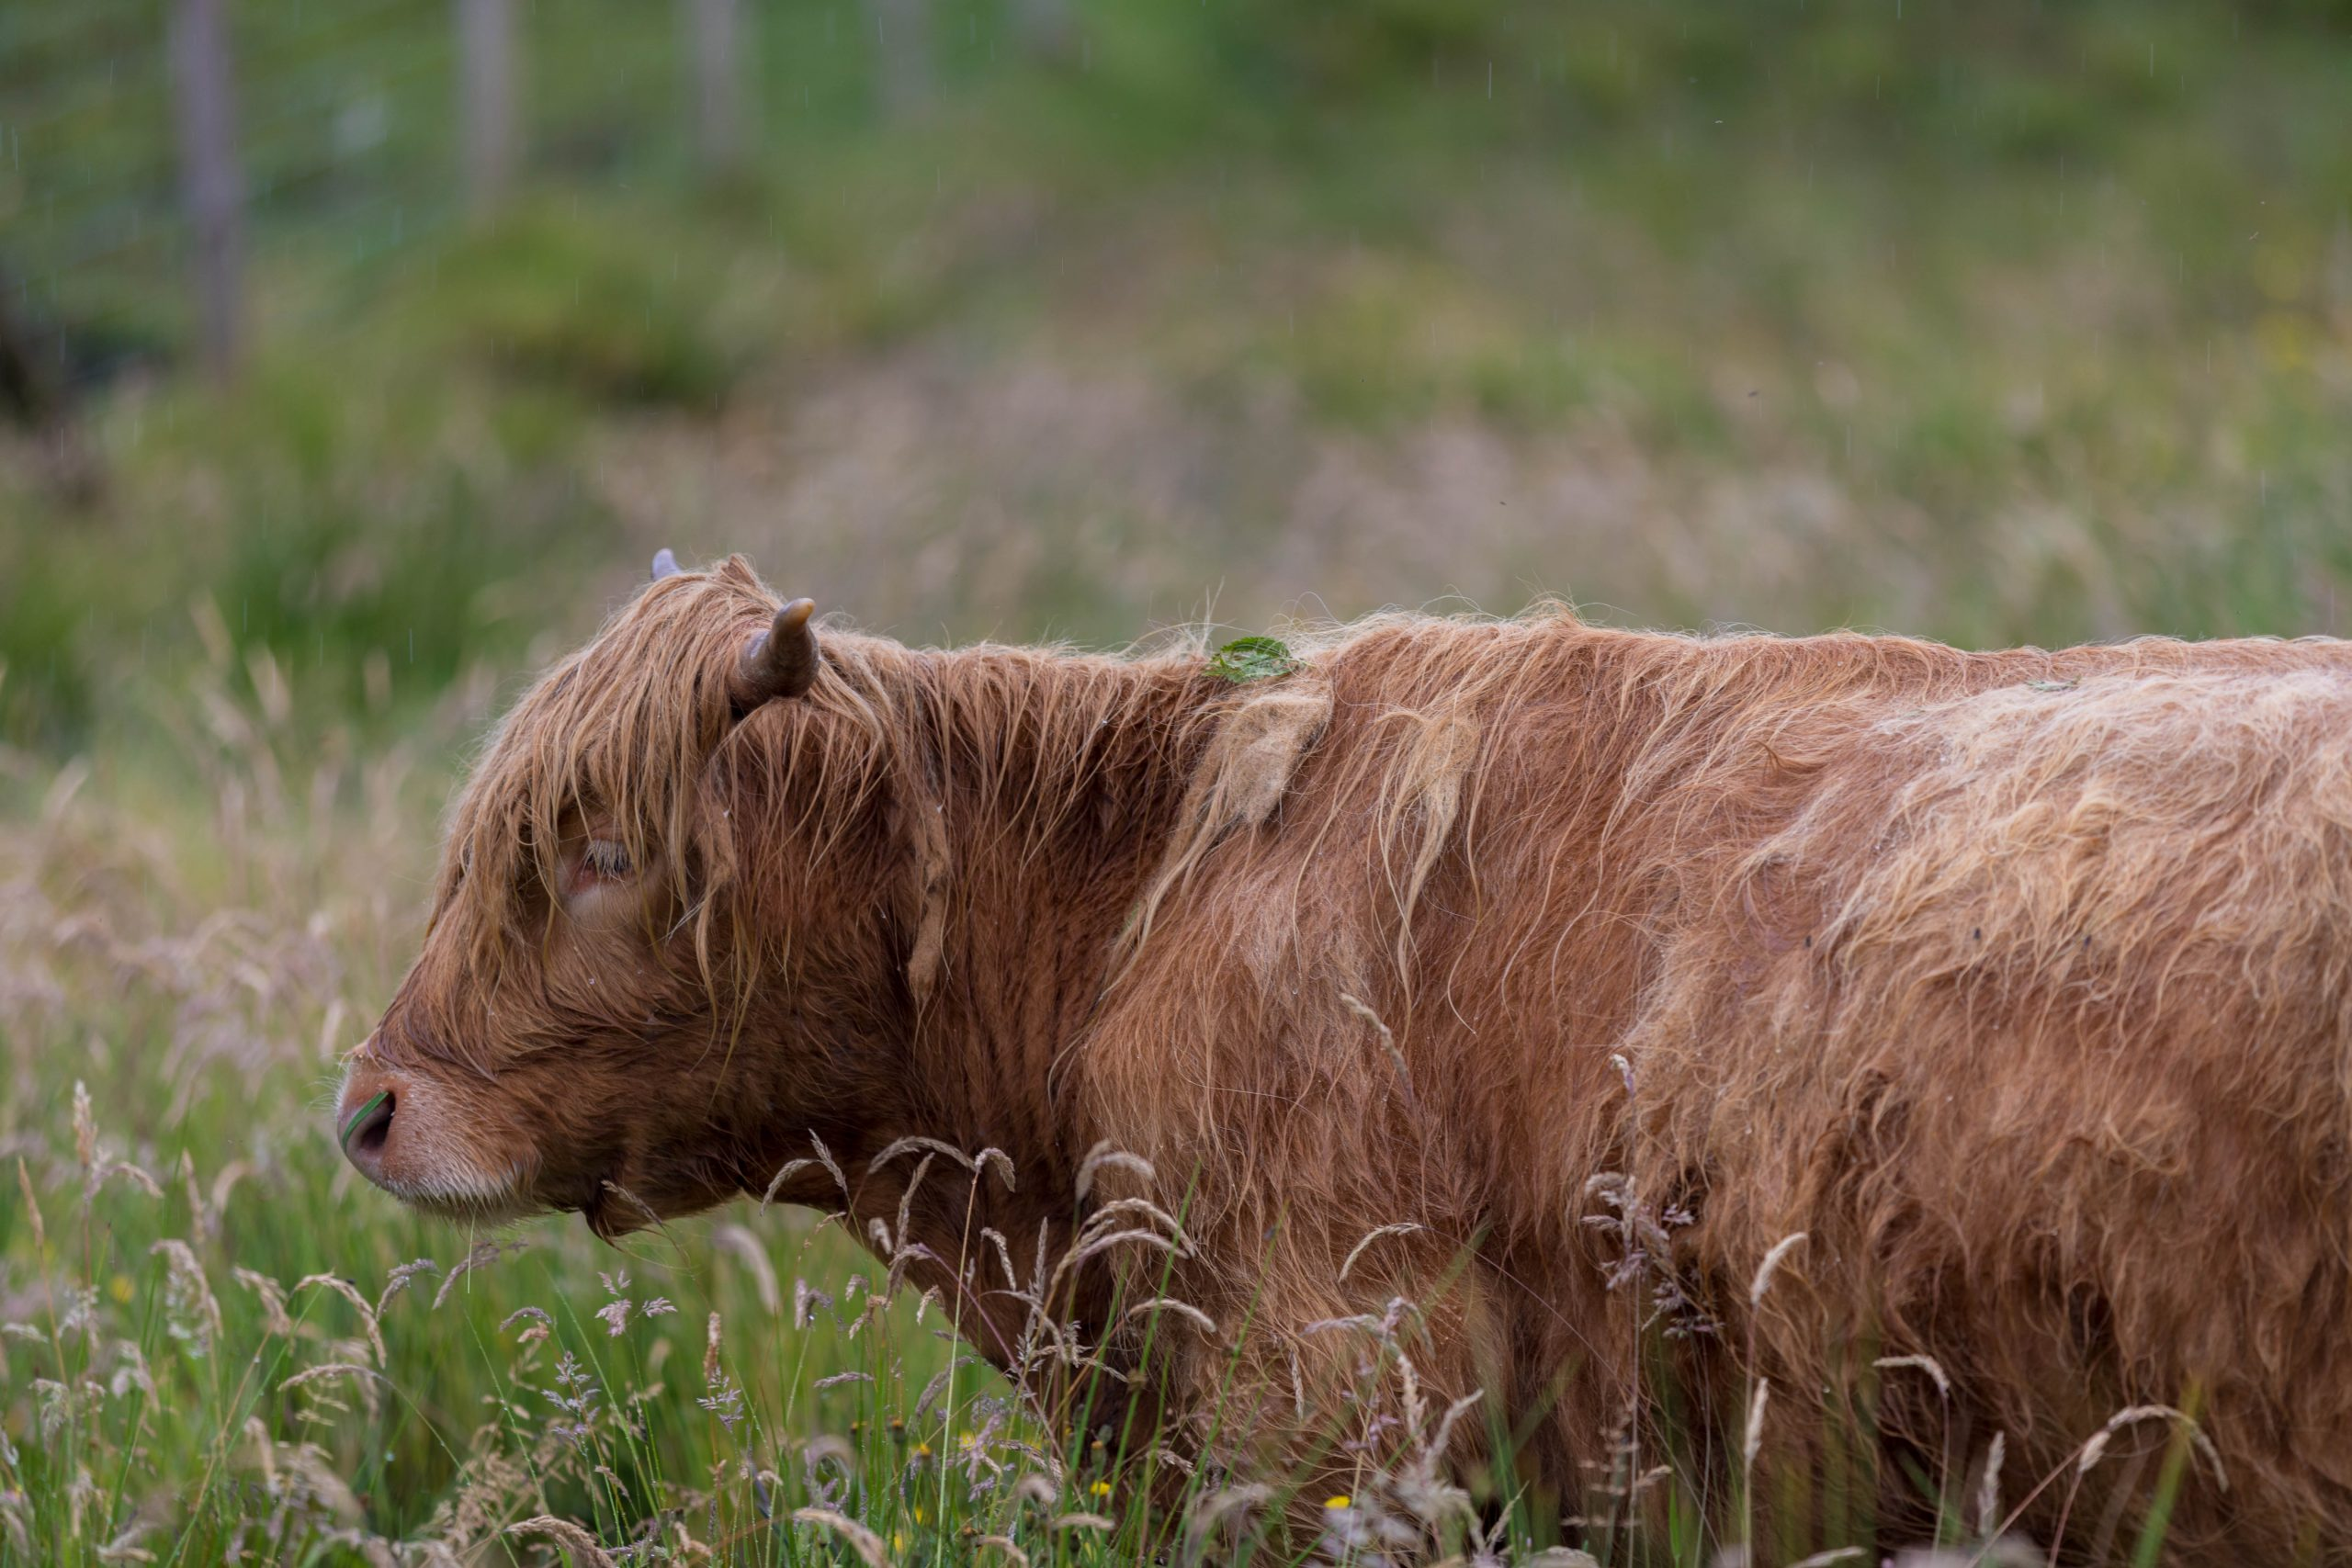 Hector's Highland Coos Cows in Sconser, Isle of Skye, Scotland by Annie Fairfax